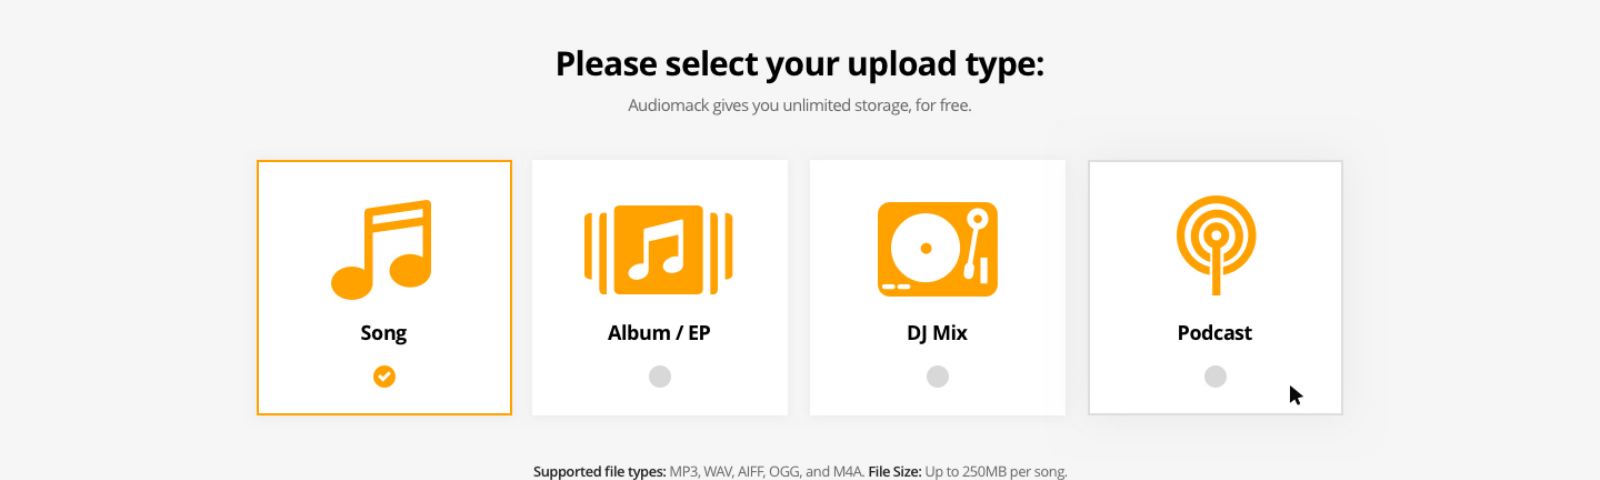 Sell your ringtones with Tunecore - How to set up an ...